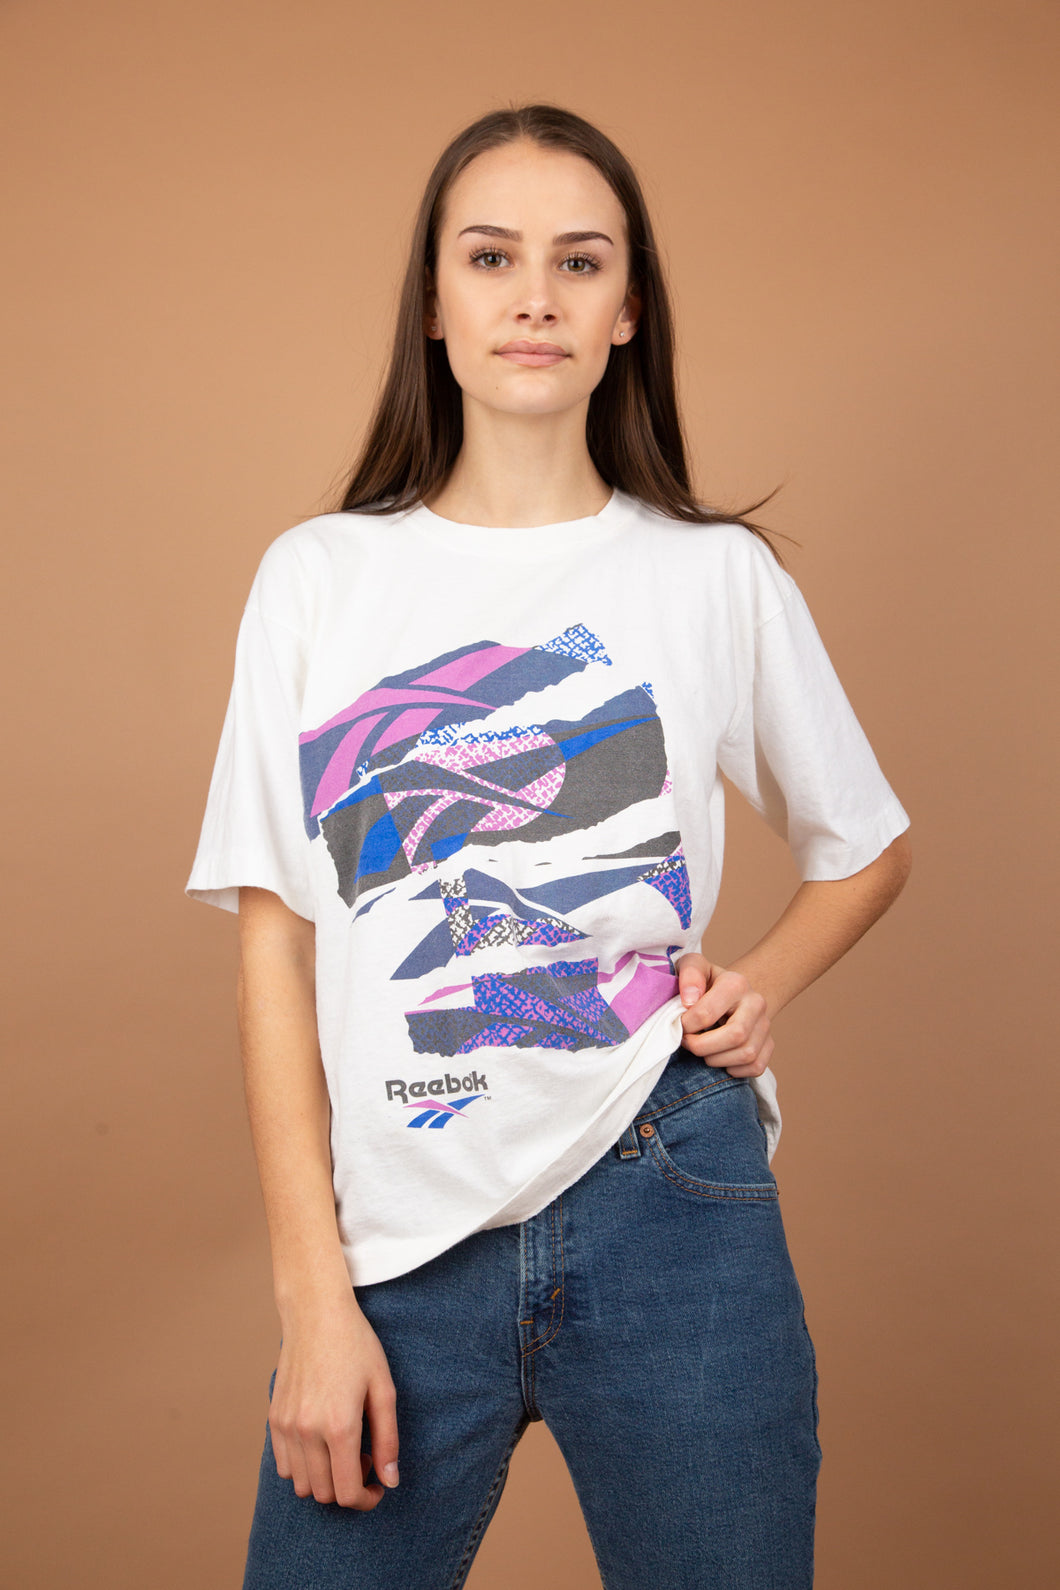 This white single-stitch top has a purple and blue 80's graphic on the front with 'Reebok' printed at the bottom and on the back. Neckline is slightly stretched out to add to vintage look.